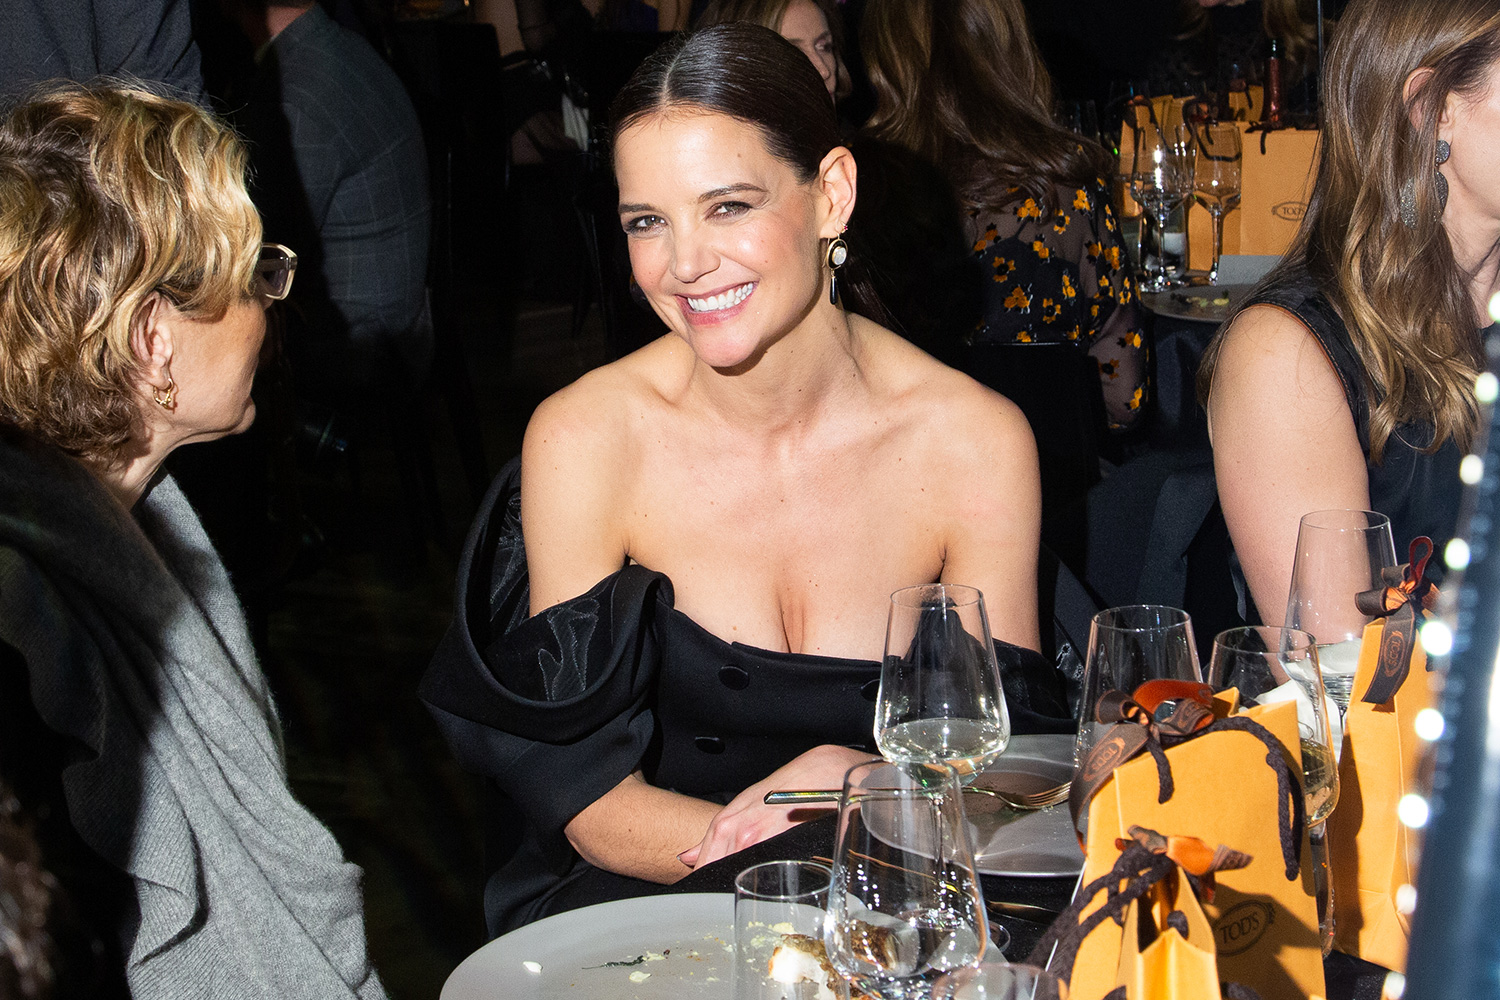 Katie Holmes attends the 2020 Whitney Art Party Whitney Museum of American Art, Manhattan, New York January 28, 2020